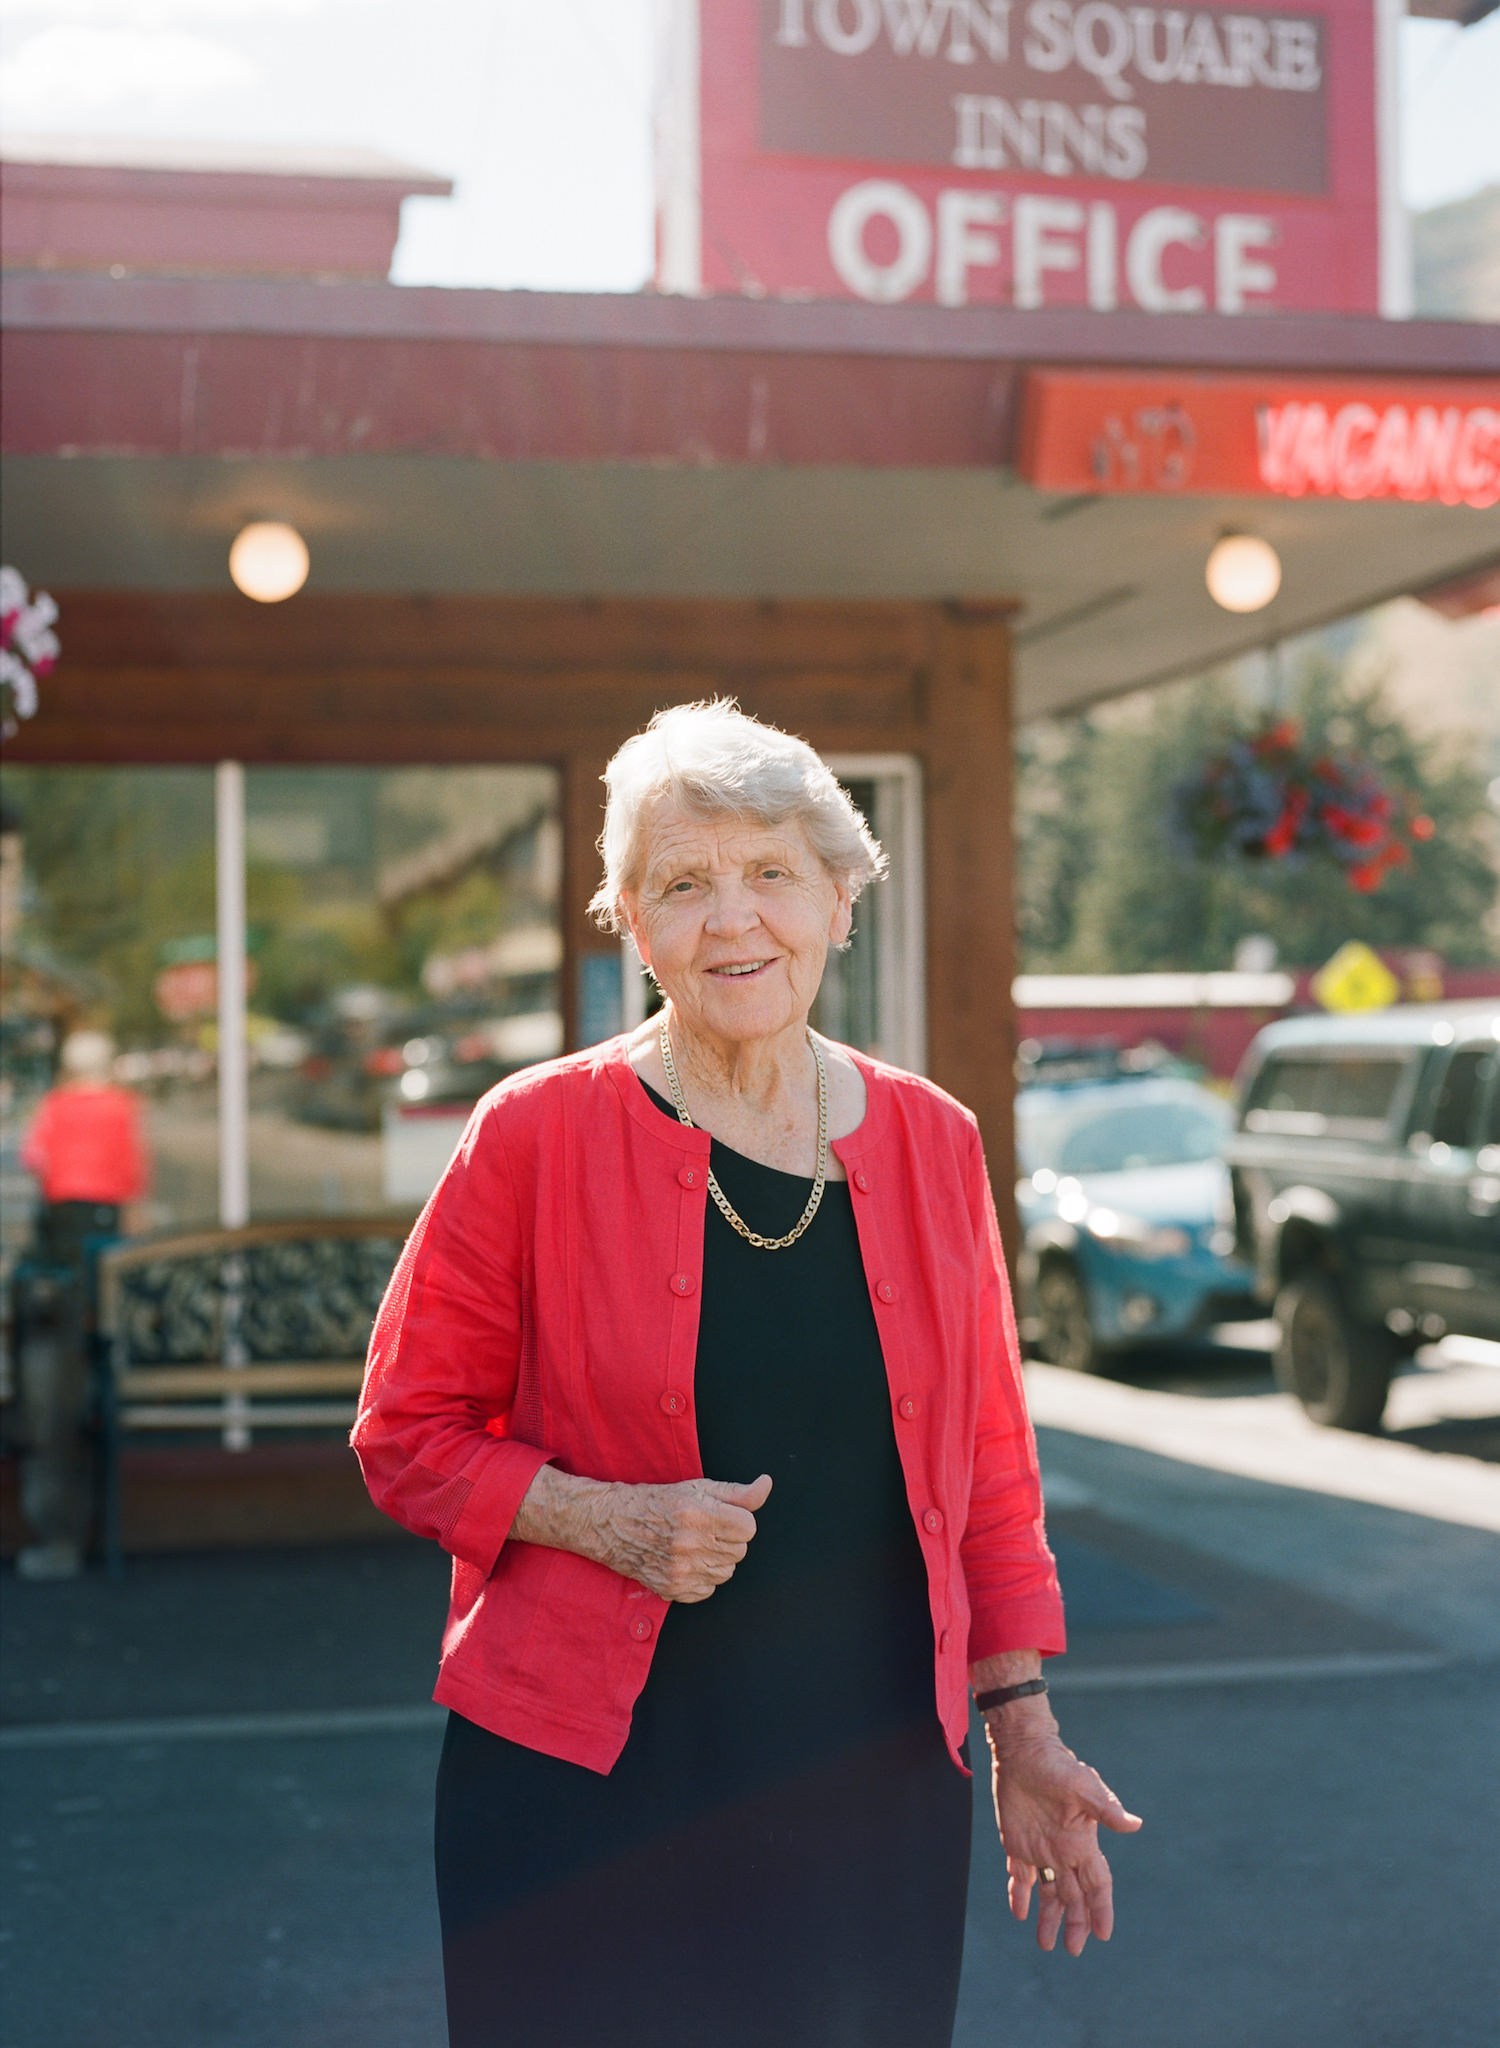 At 84 years old, most days you'll find Clarene at work in her office at the Antler Motel.